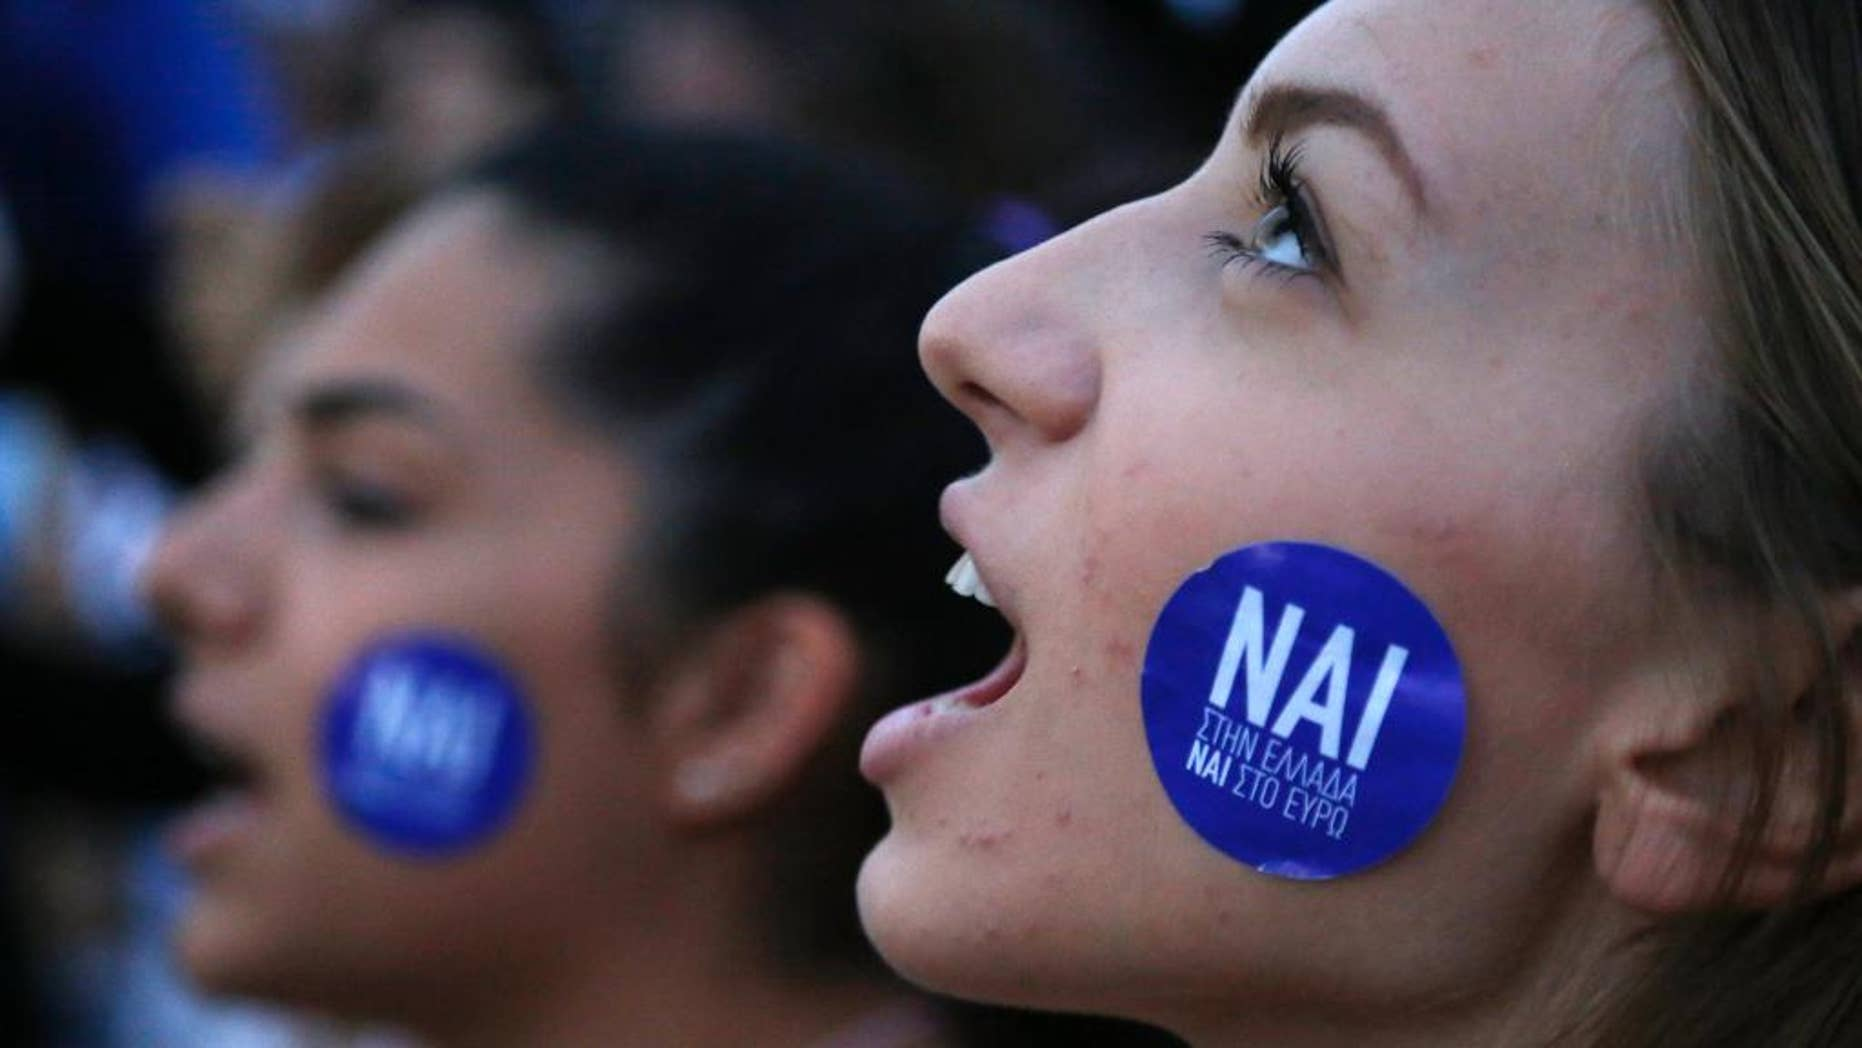 A demonstrator shouts slogans as the sticker on her cheek reading ''YES to Greece, Yes to Euro'' during a rally organized by supporters of the YES vote for the upcoming referendum in front of the Greek Parliament in Athens, Tuesday, June 30, 2015 Greece's European creditors were assessing a last-minute proposal Athens made for a new two-year rescue deal, submitted just hours before the country's international bailout program expires and it loses access to billions of euros in funds. (AP Photo/Petros Karadjias)